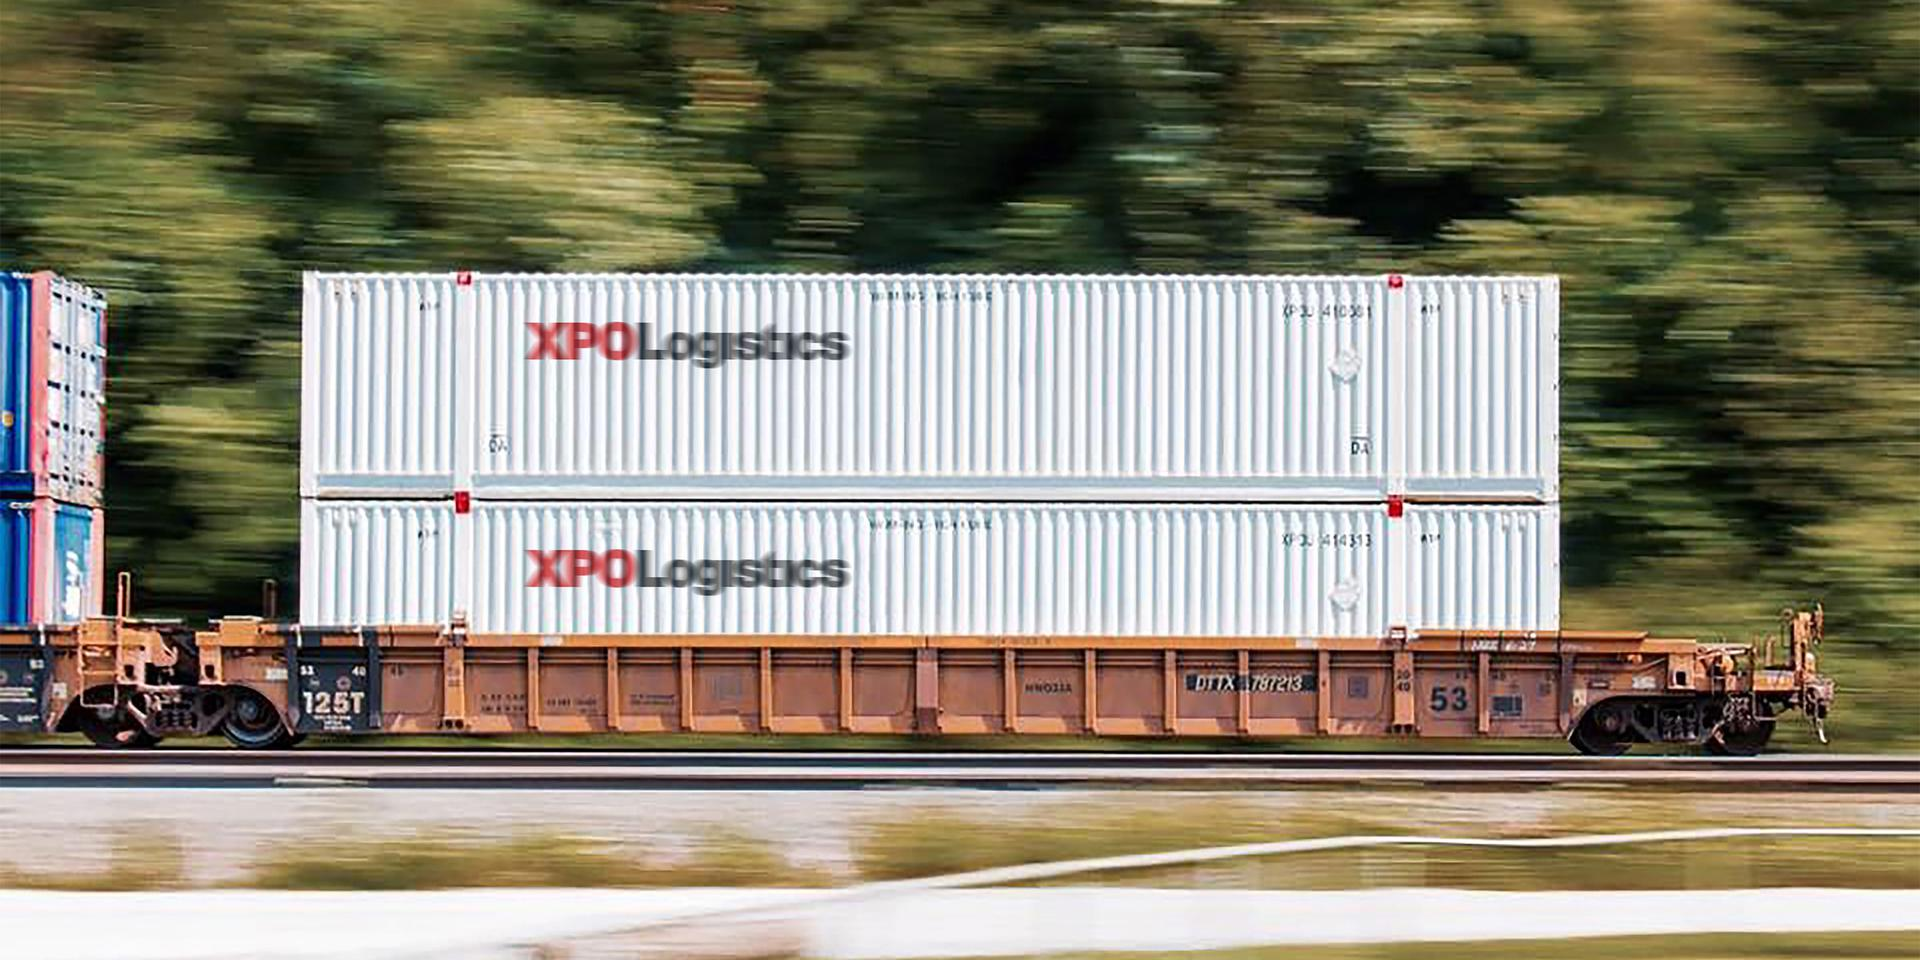 XPO rail transportation